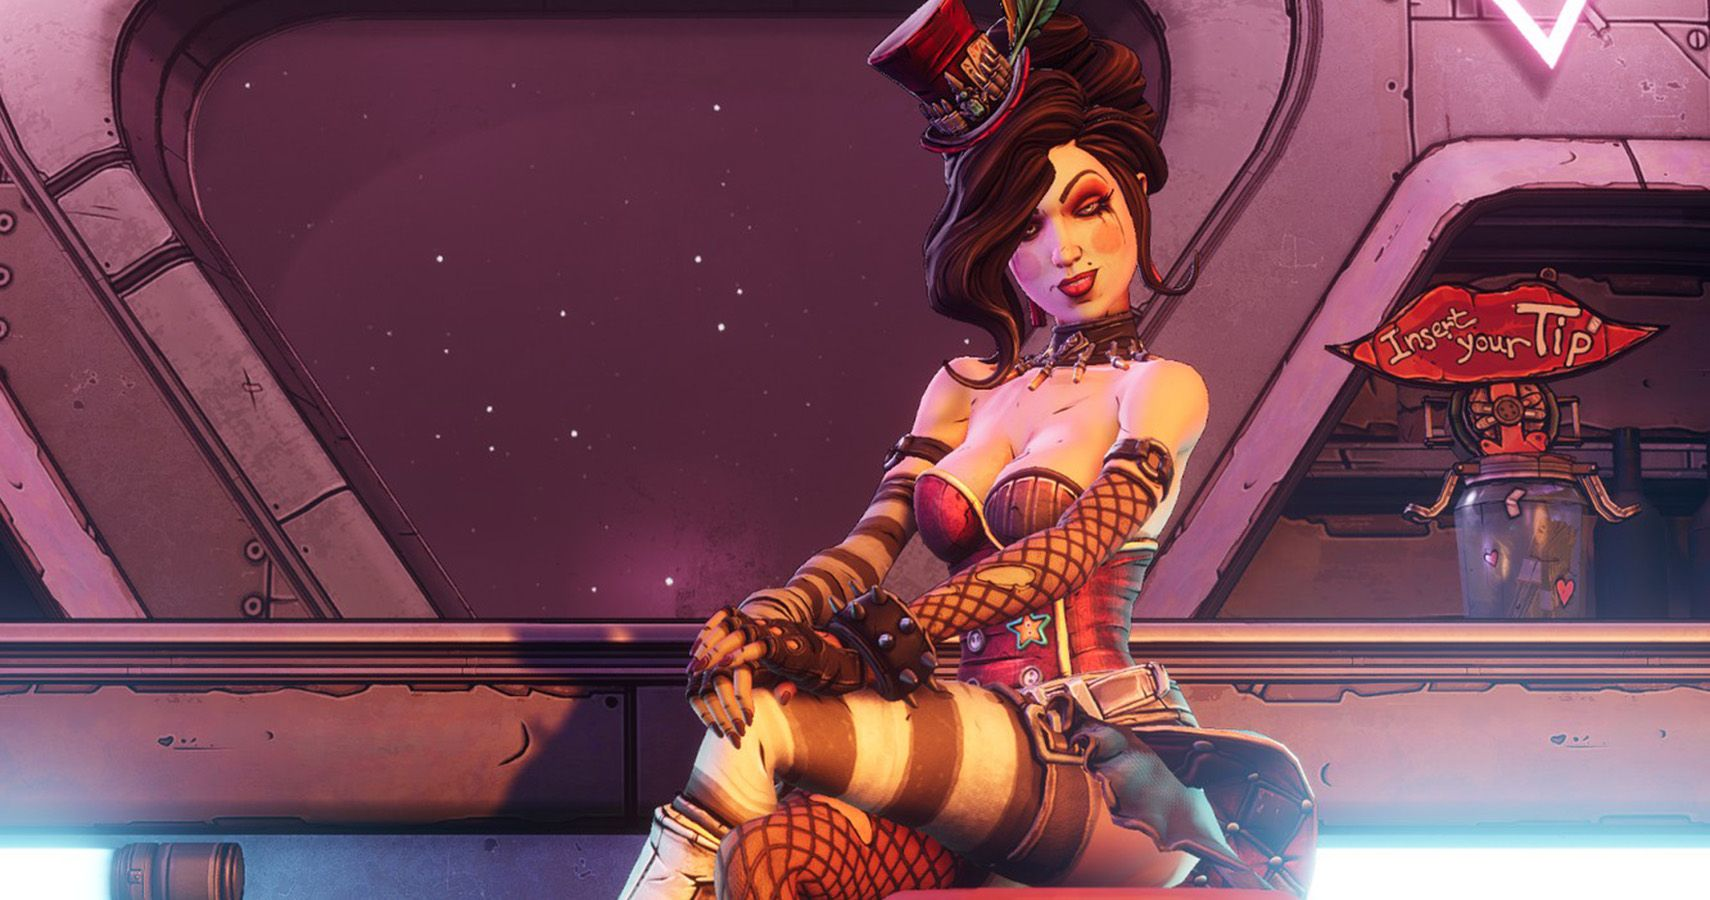 Borderlands 3: 10 Weird Facts You Didn't Know About Moxxi